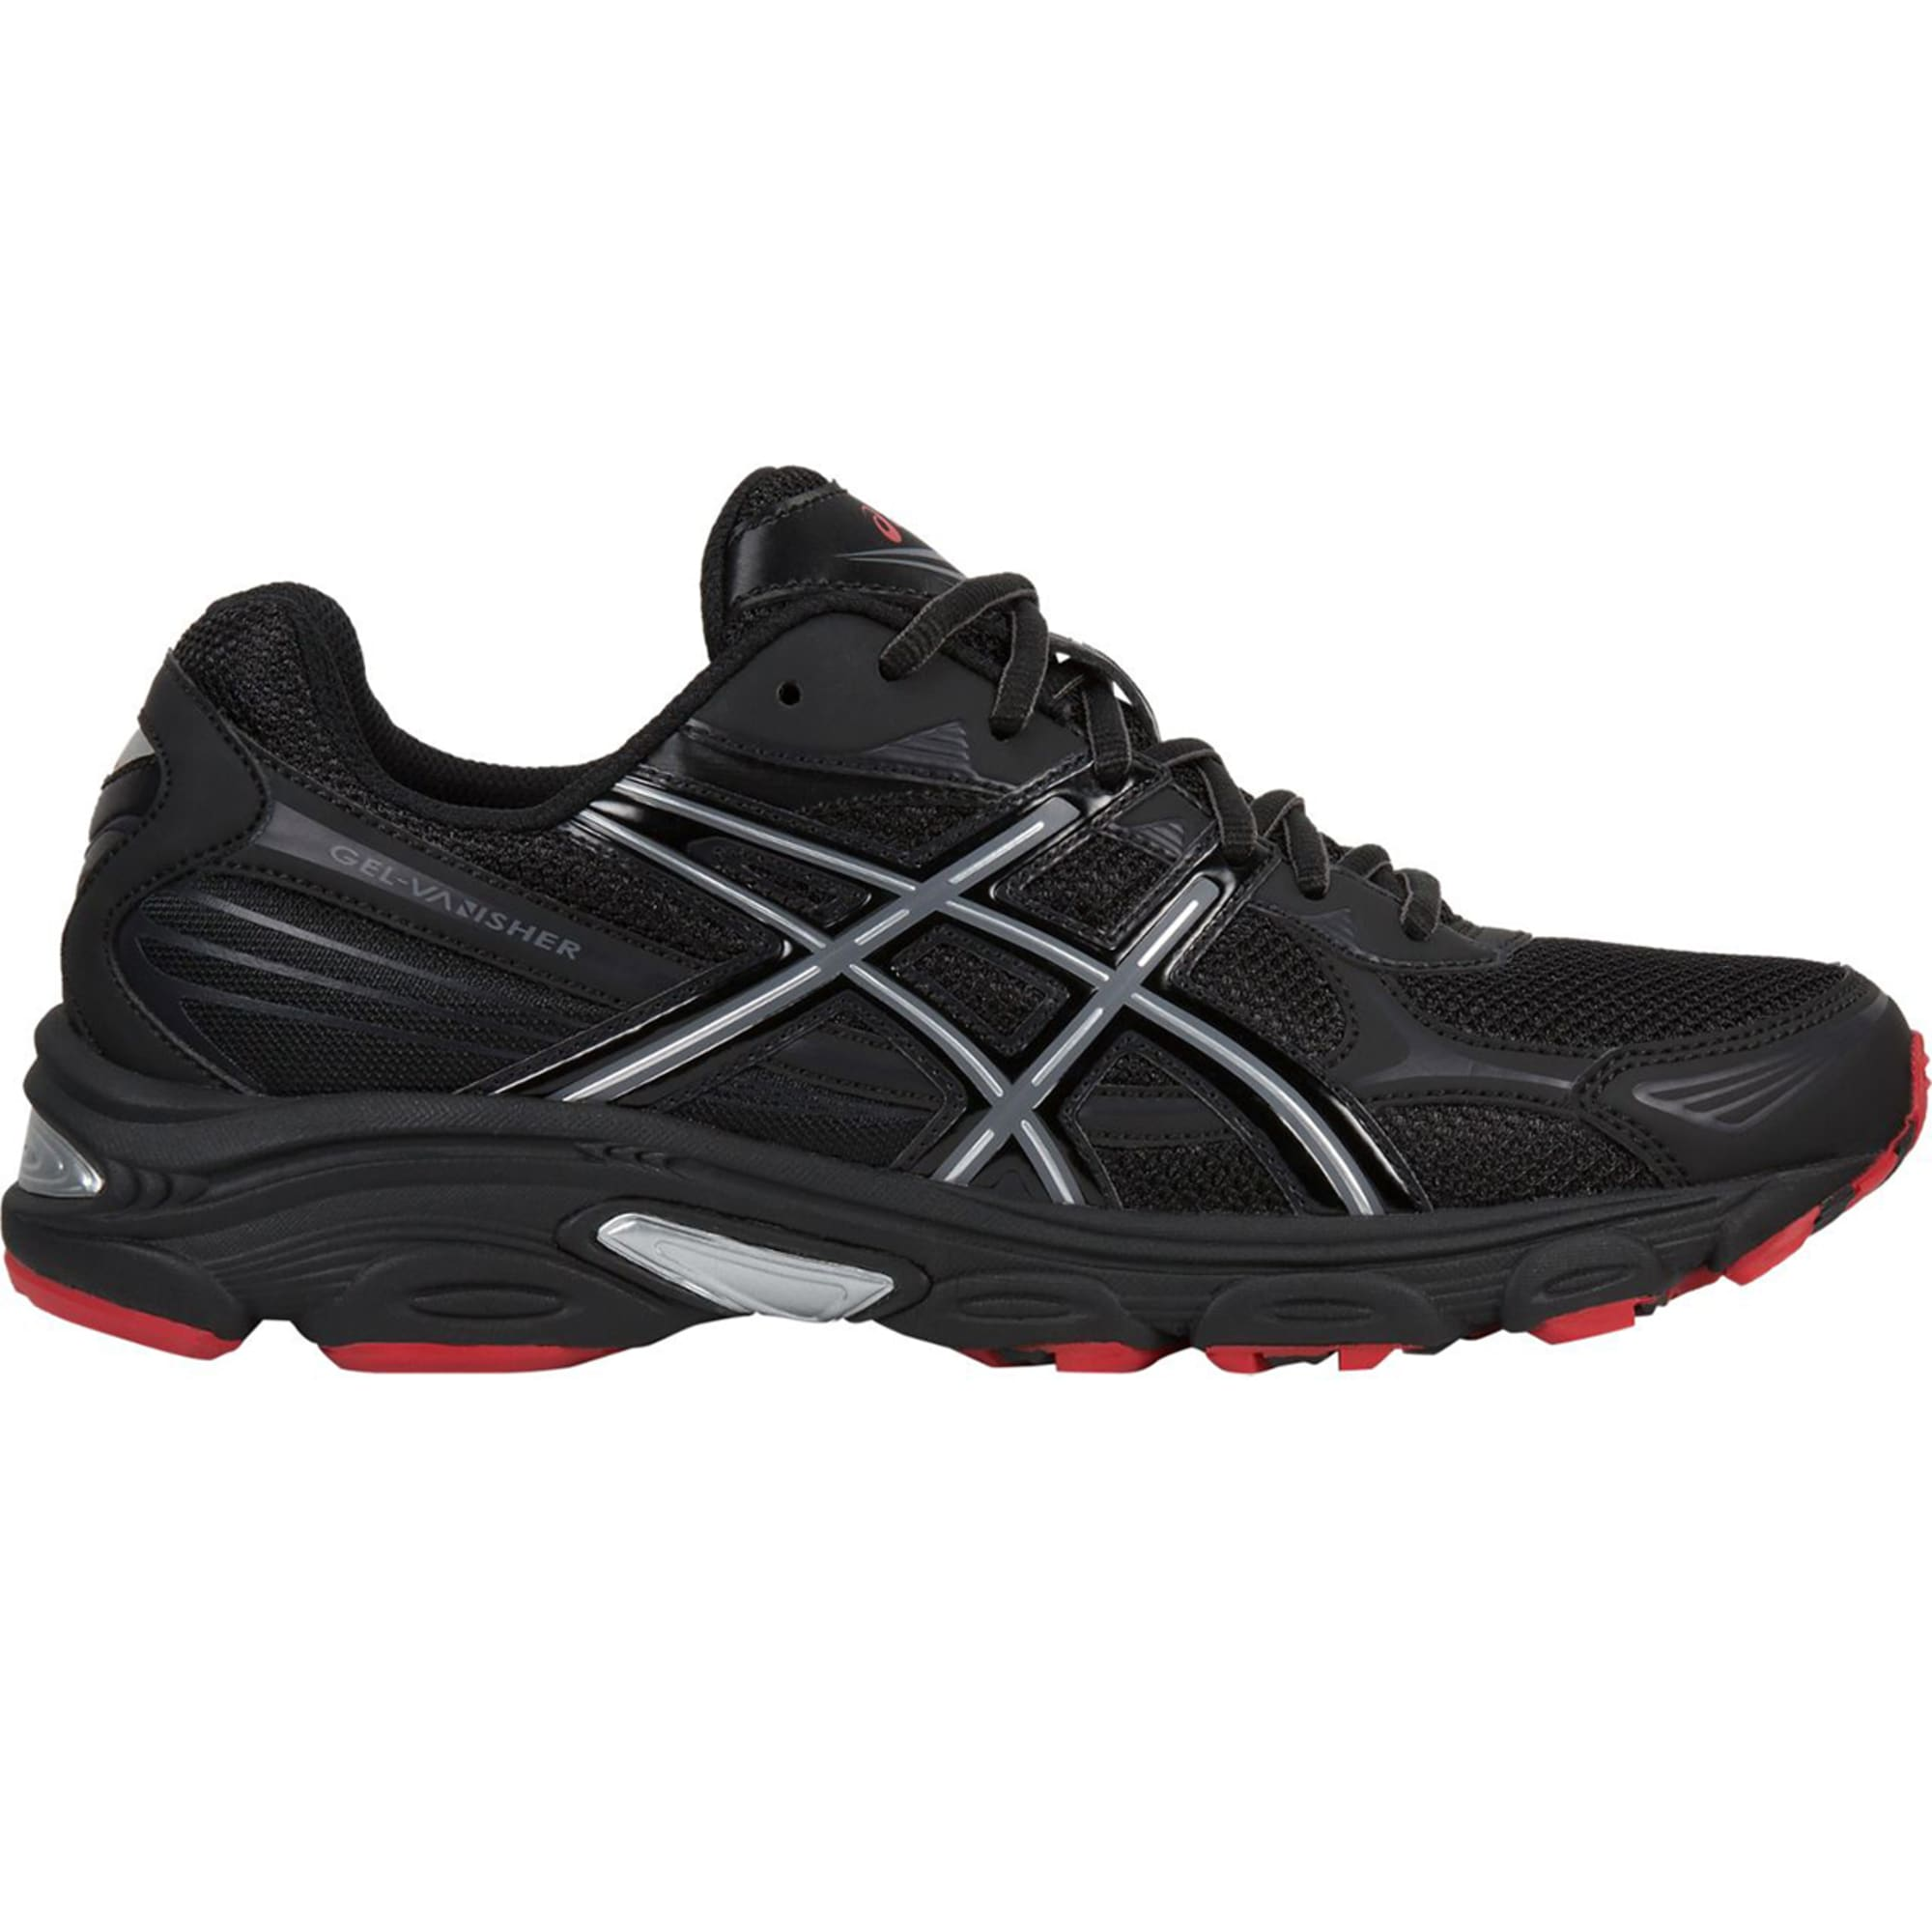 ASICS Men's GEL Vanisher Running Shoes